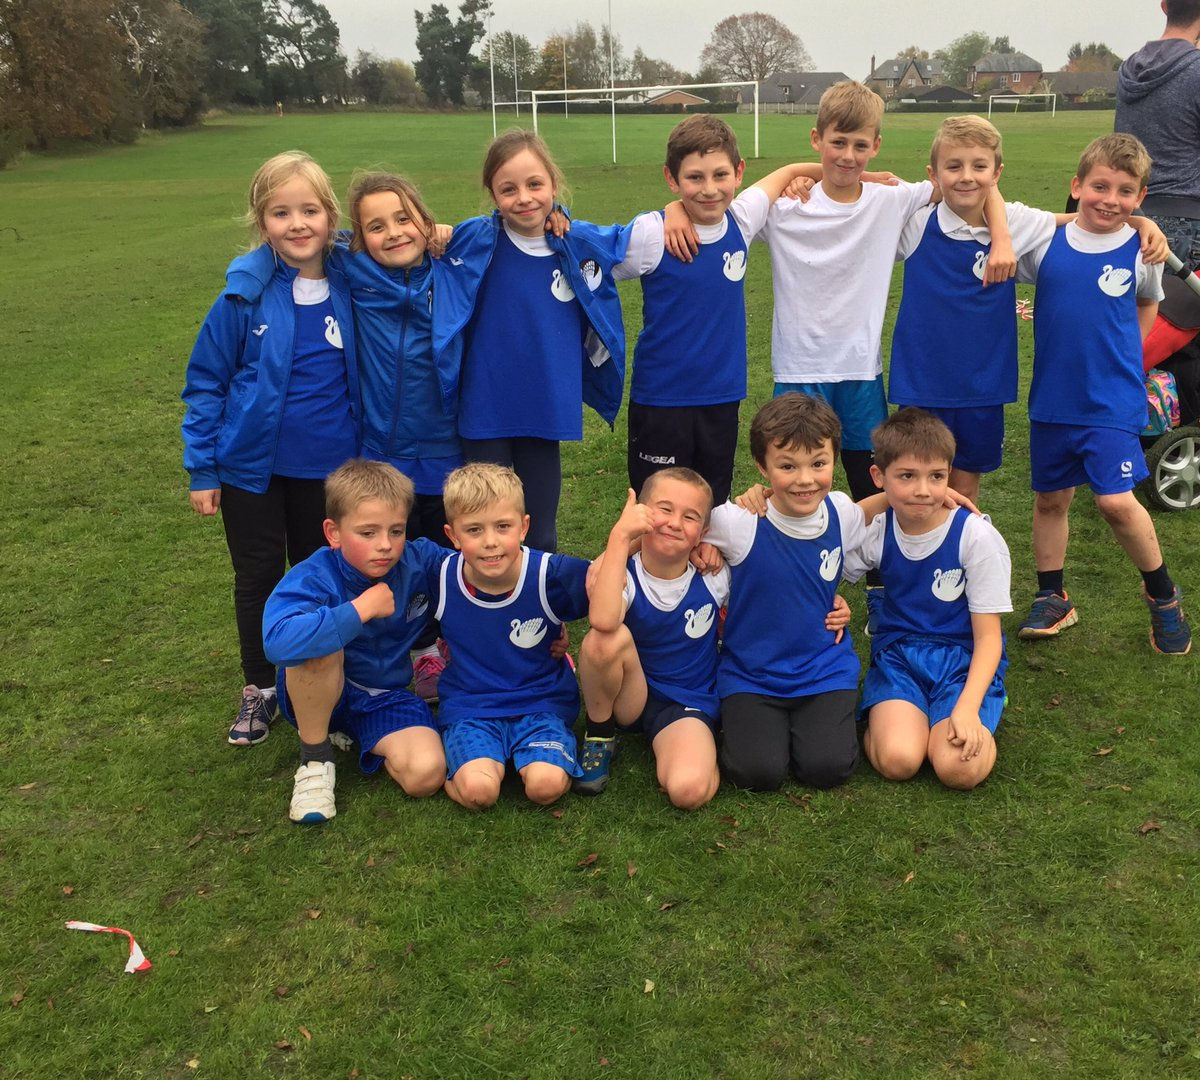 Super star cross country runners at the second event, well done all on improving your previous results! #ellesmere #running #sport